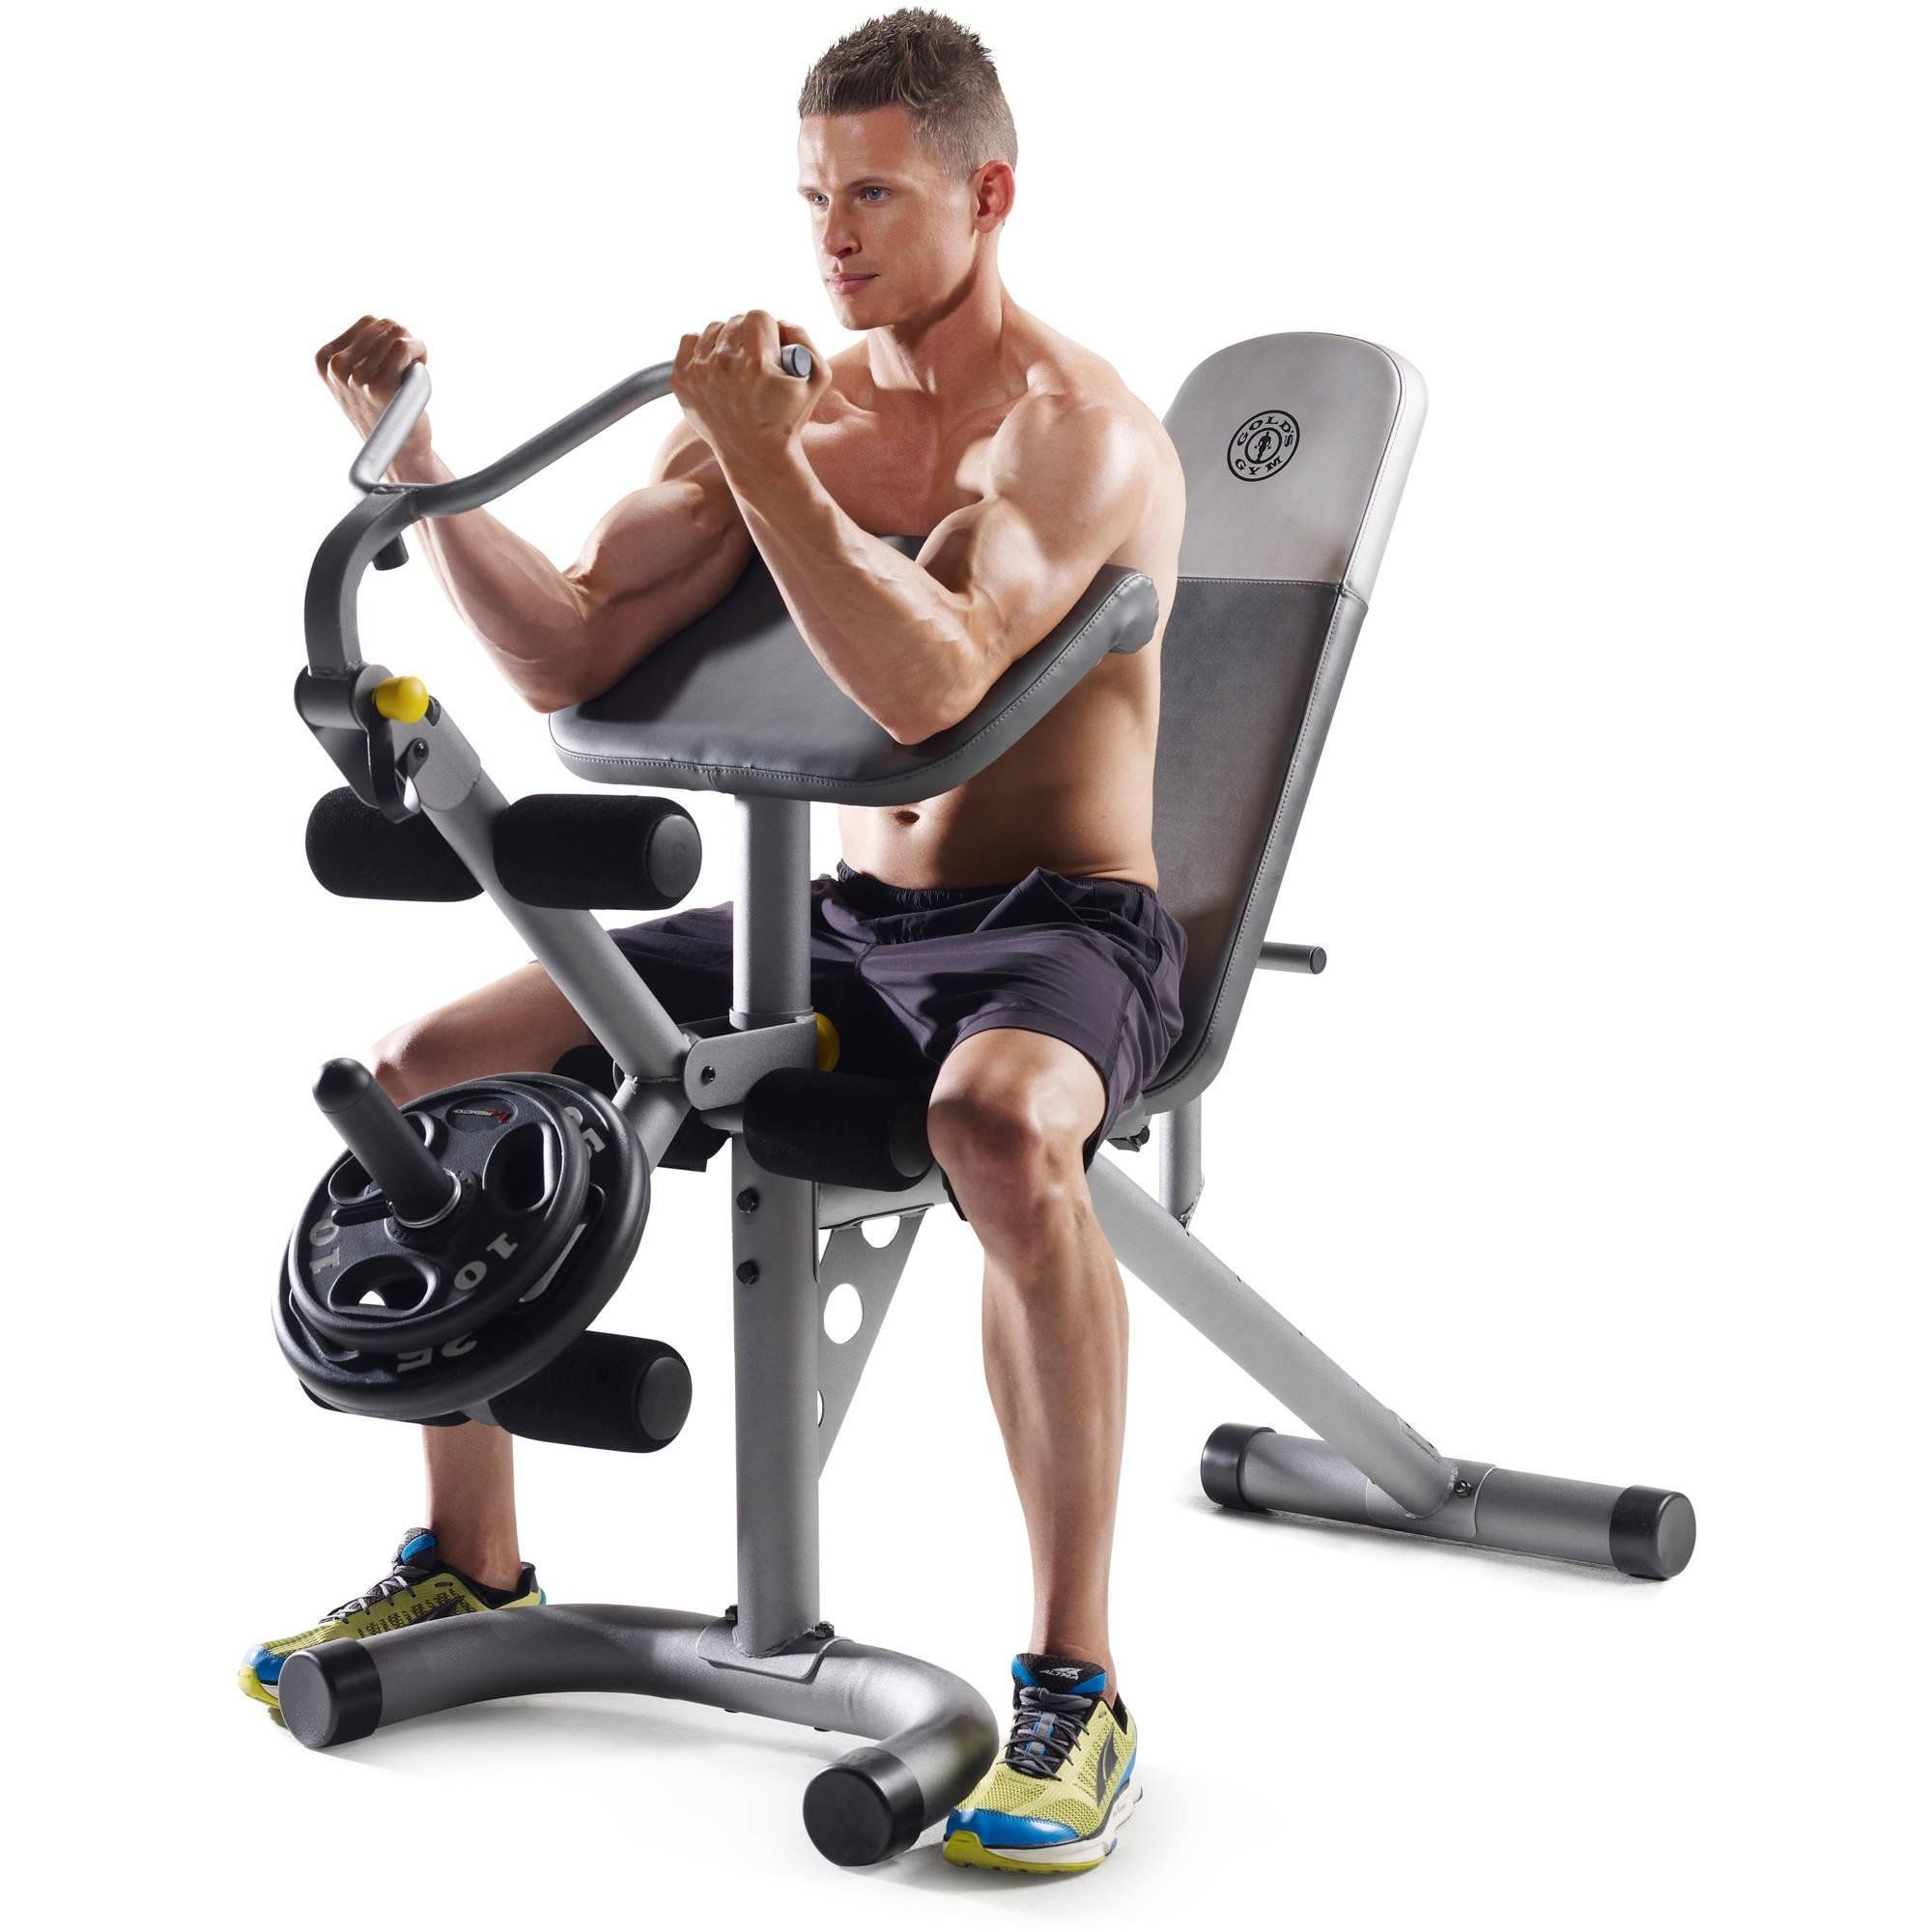 Golds gym xrs 20 olympic workout bench without rack multiple golds gym xrs 20 olympic workout bench black 04 fitness equipment weight benches at academy sports nvjuhfo Image collections